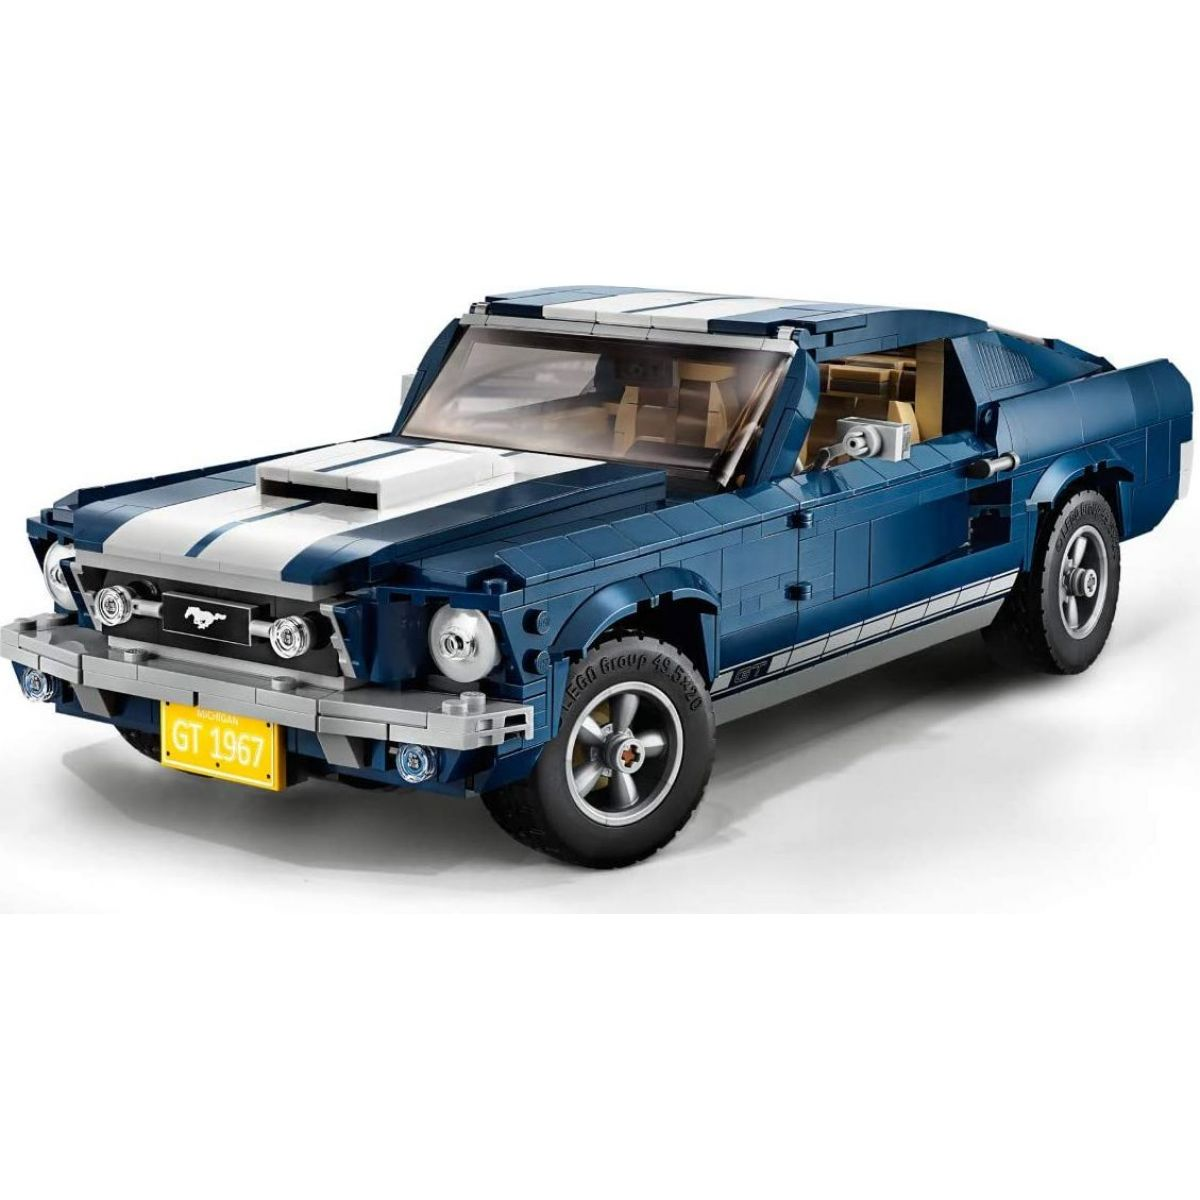 LEGO Creator 10265 Expert Ford Mustang